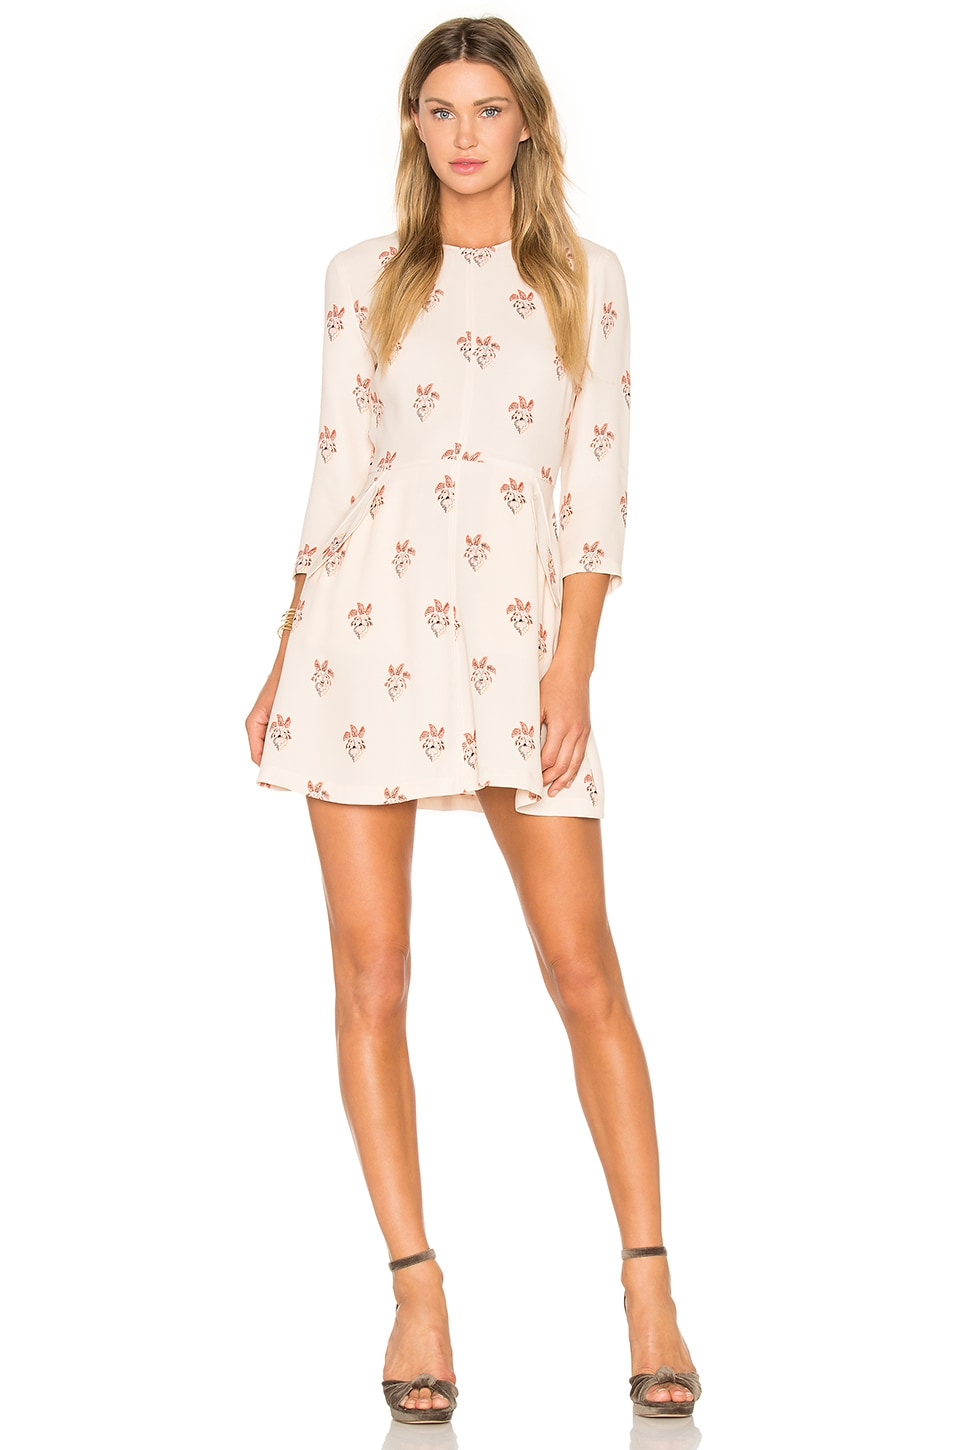 A.L.C. Terry Dress in Peach & White